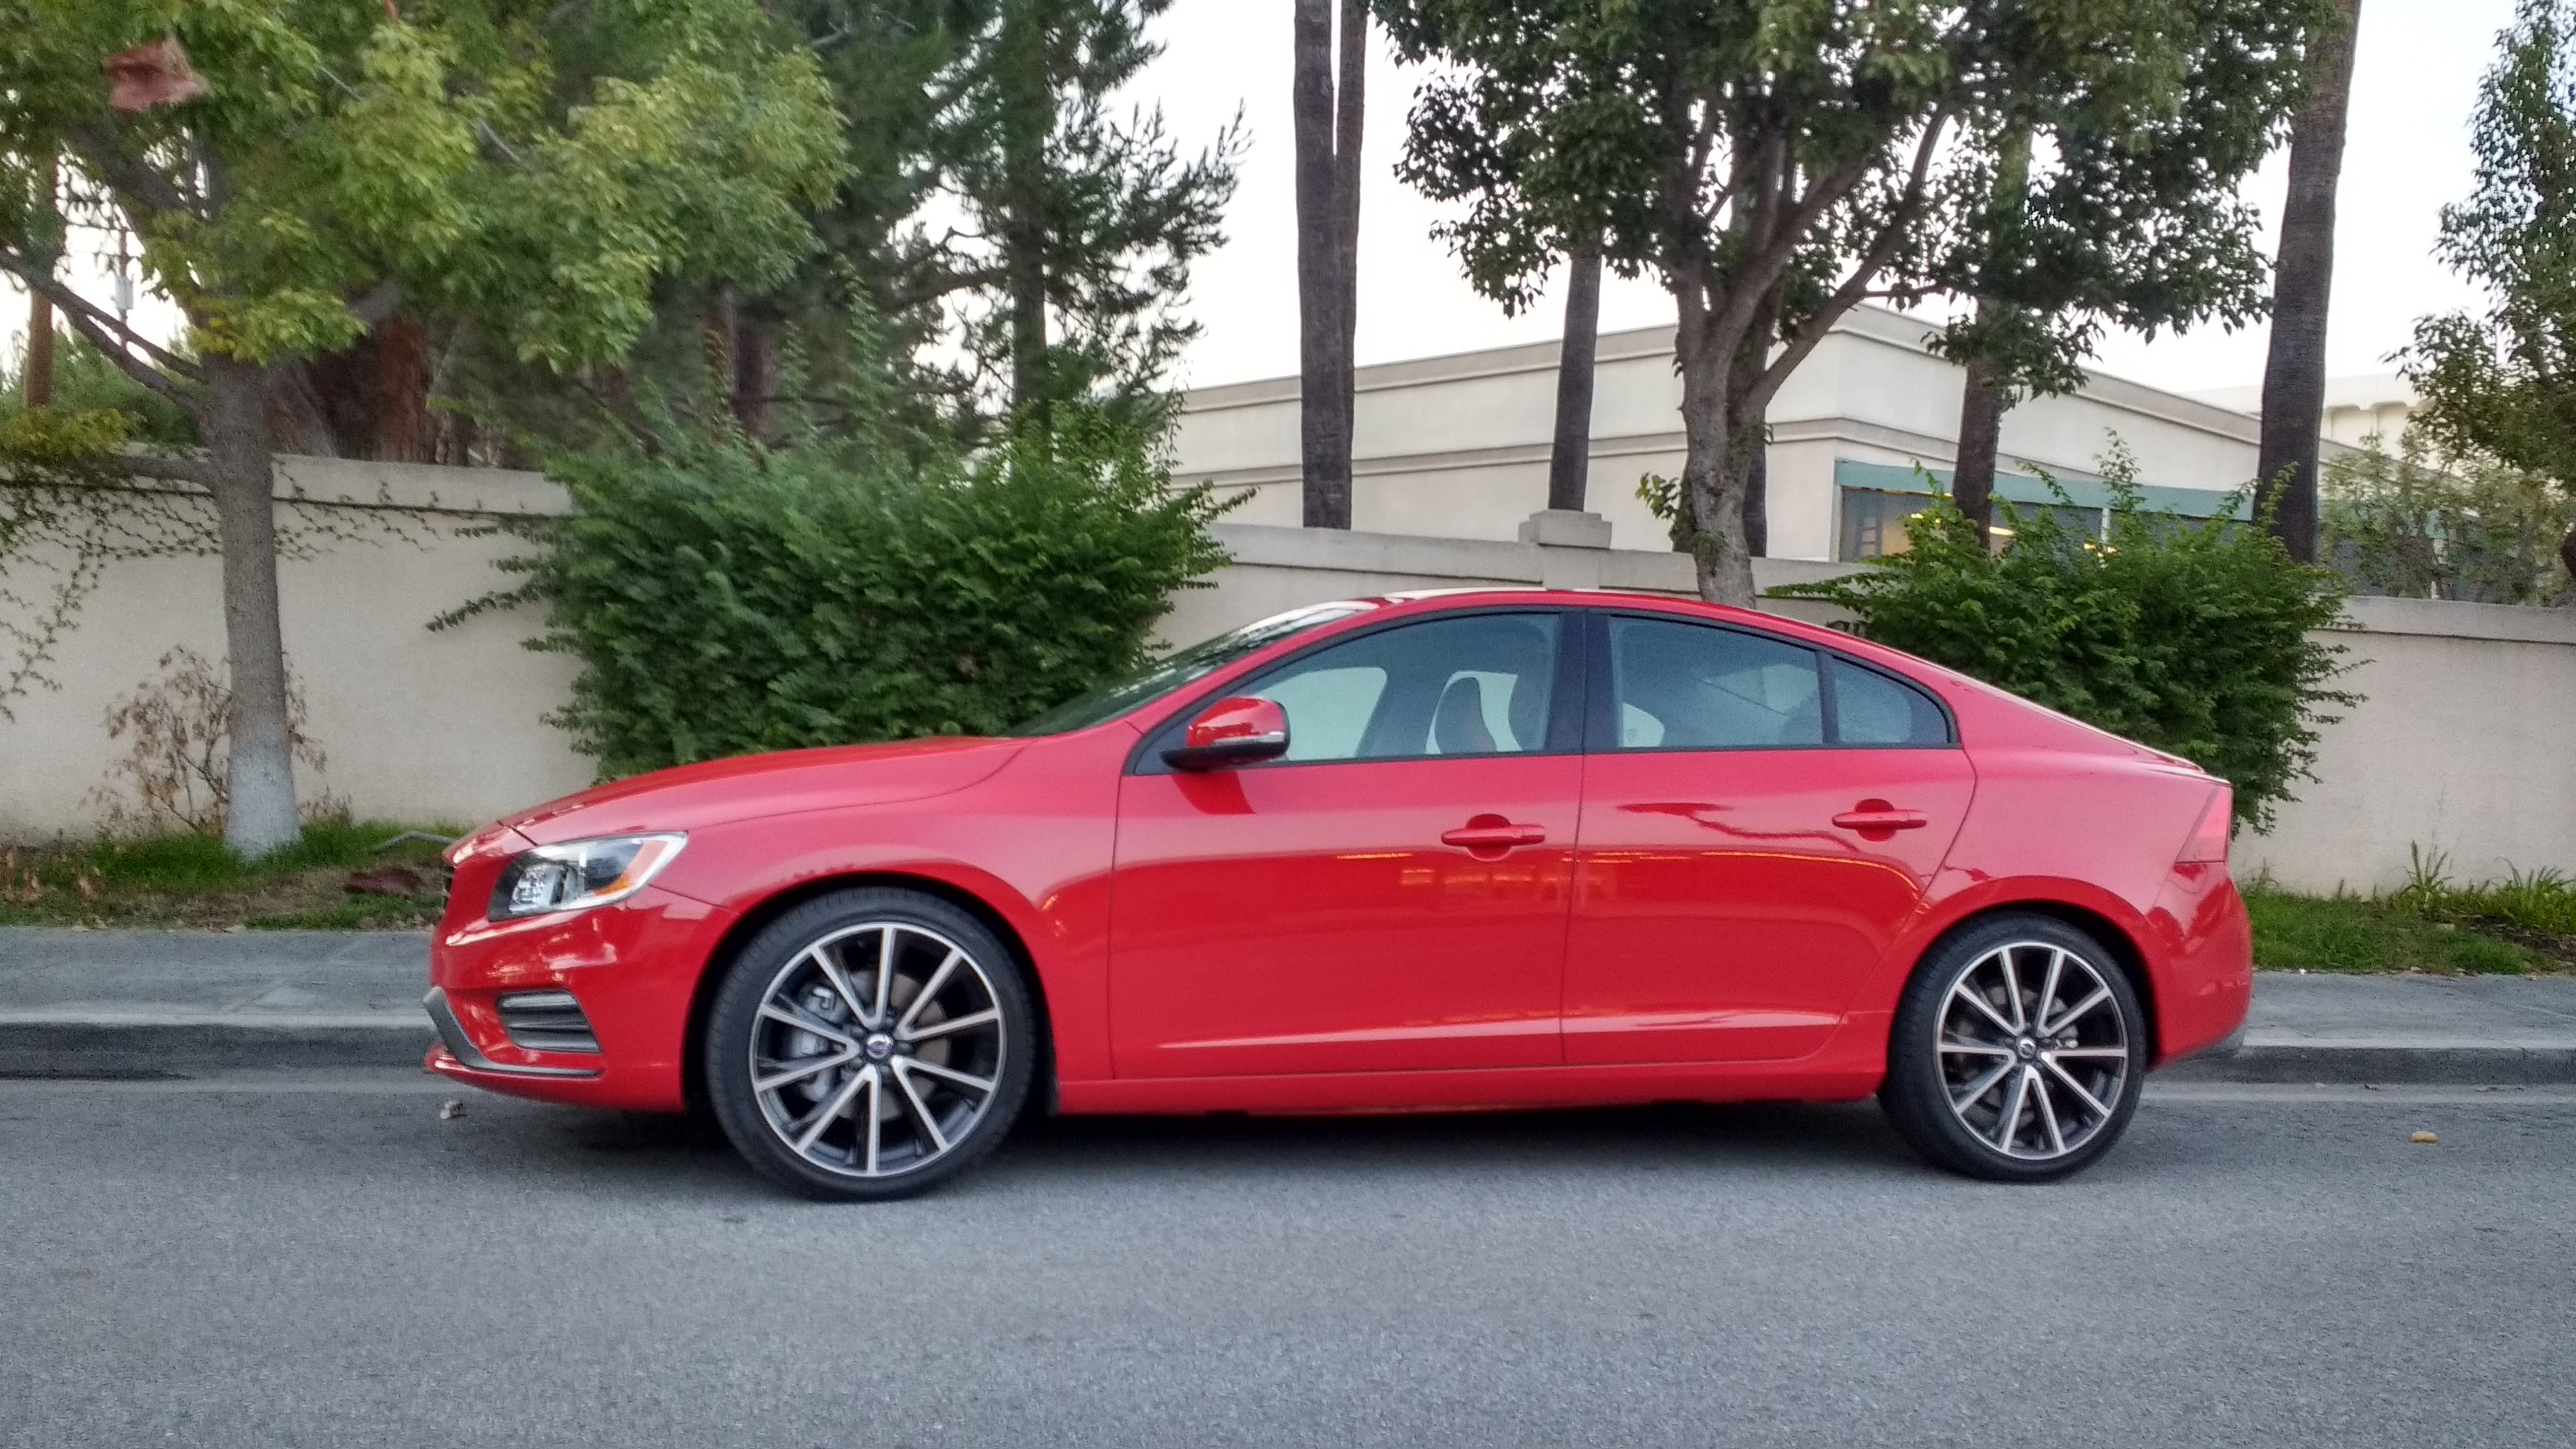 wheel safety price ratings new photos drive front photo features sedan reviews dynamic wheels volvo